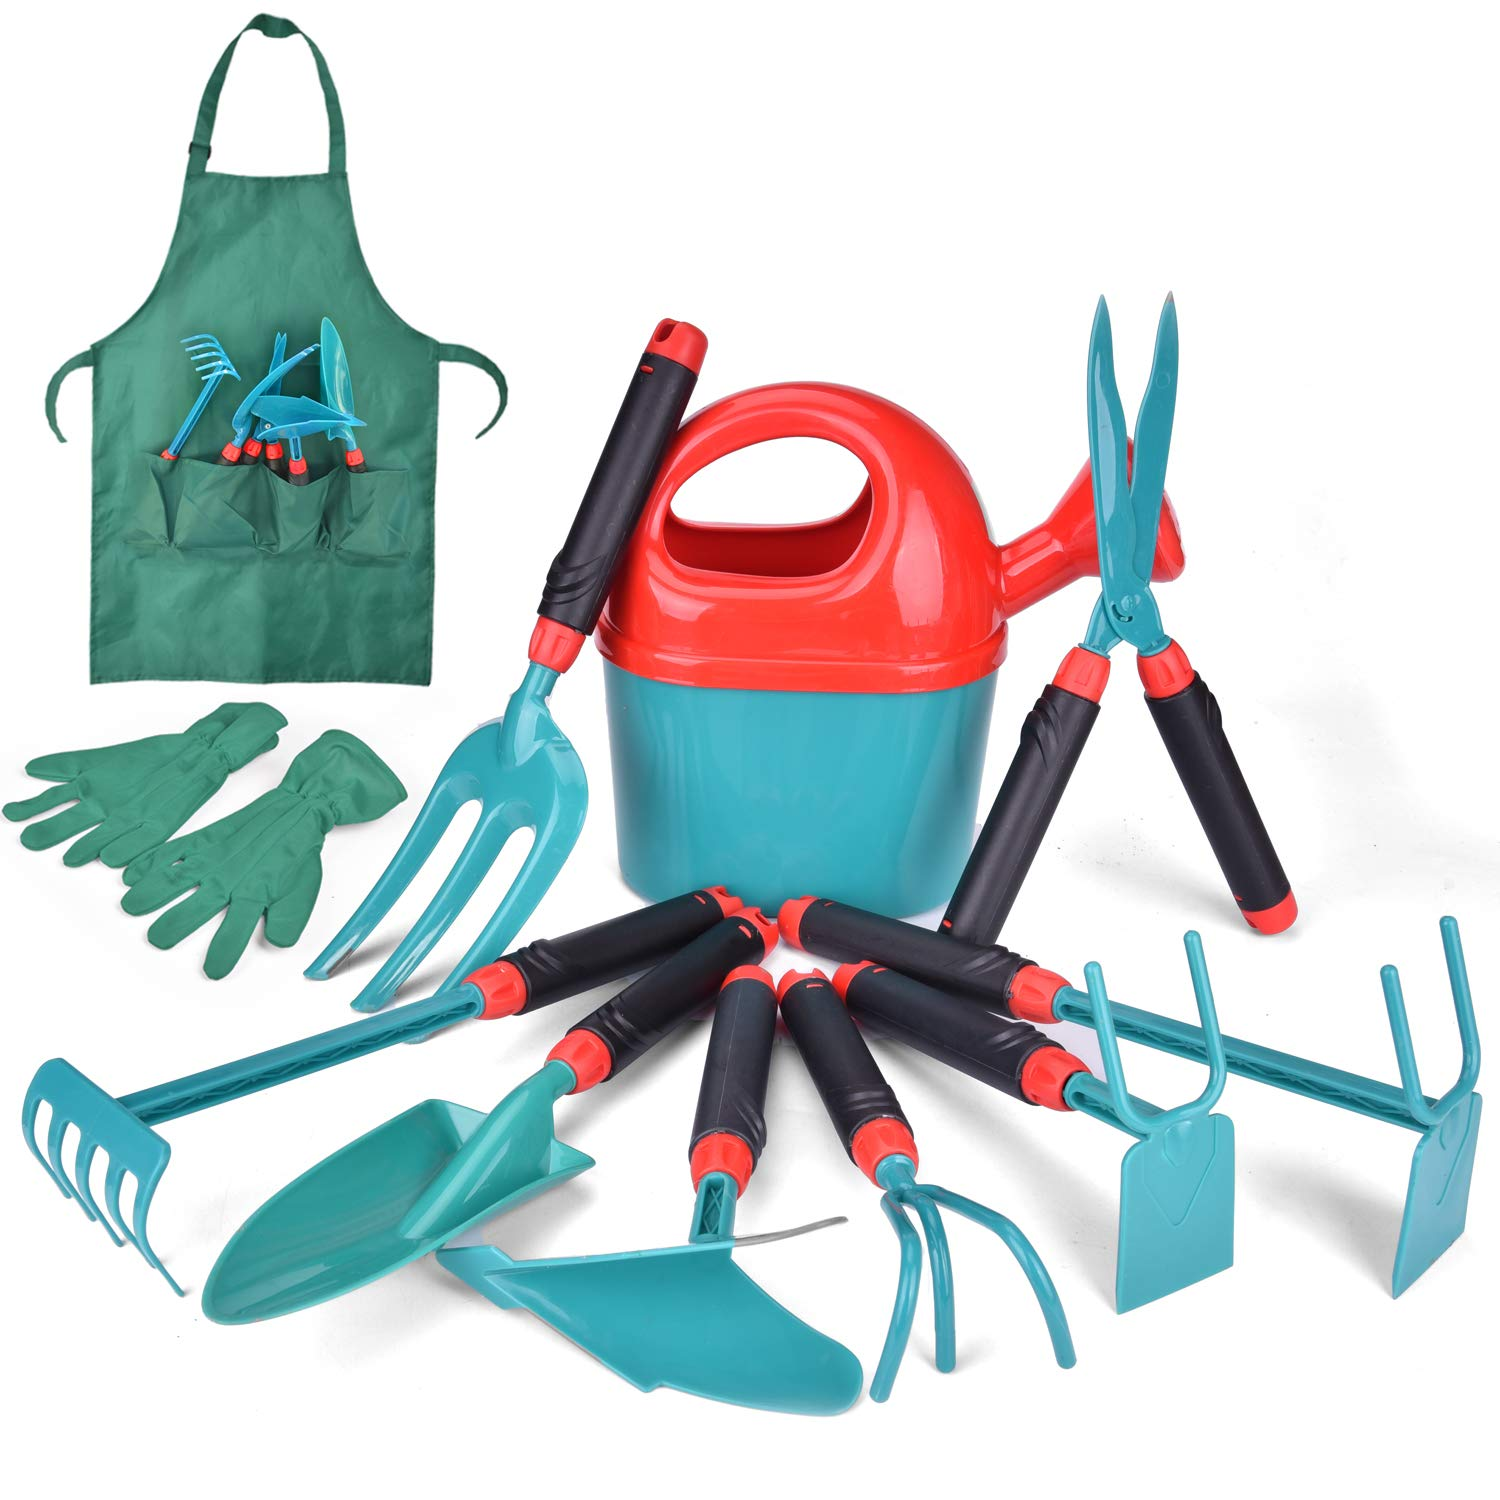 Fun Little Toy 12 PCs Kids Gardening Tool Set, Outdoor Toys for Kids Includes Shovel, Fork, Rake, Gloves and Apron 71ttH3uAKIL